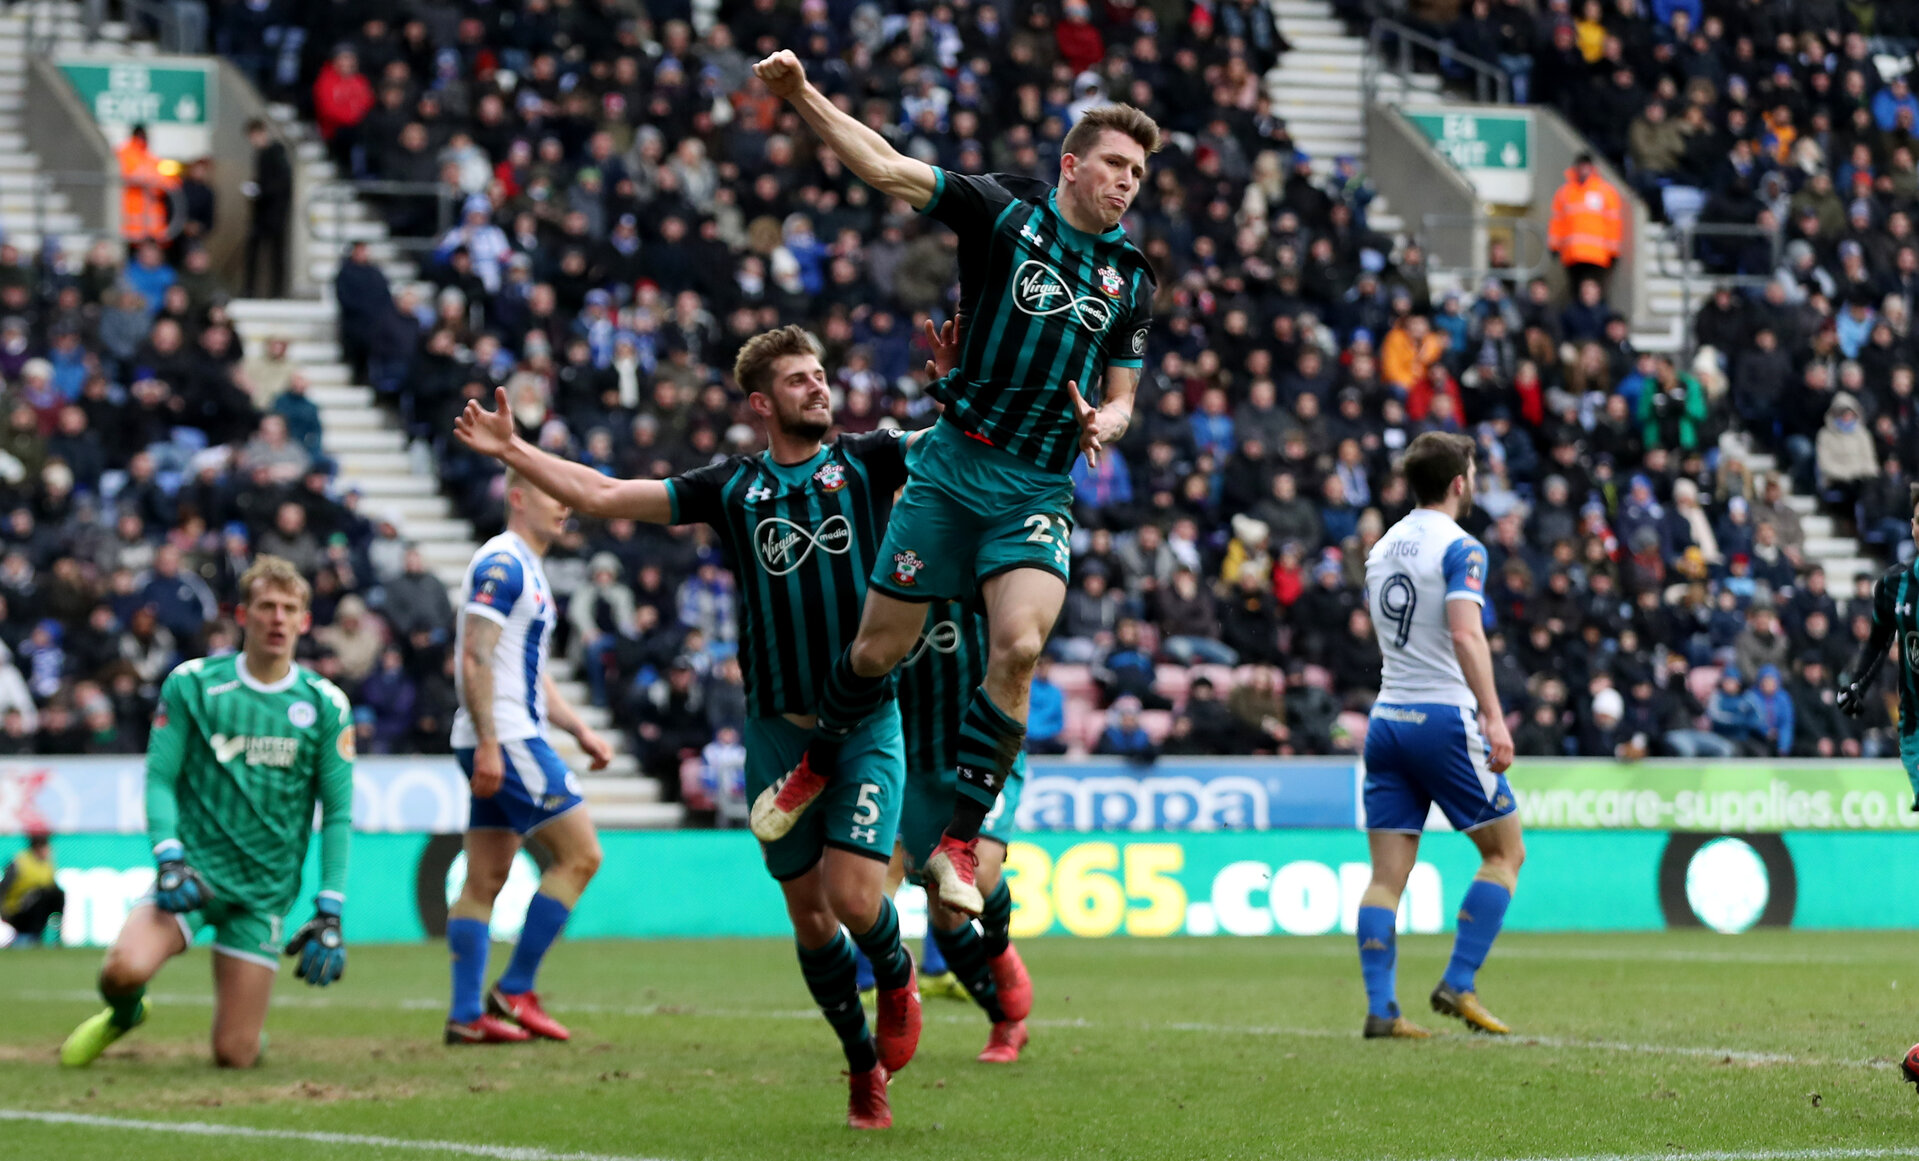 WIGAN, ENGLAND - MARCH 18: Pierre-Emile Hojbjerg of Southampton celebrates after putting his team 1-0 up during the FA Cup Quarter Final match between Wigan Athletic and Southampton FC at the DW Stadium on March 18, 2018 in Wigan, England. (Photo by Matt Watson/Southampton FC via Getty Images)